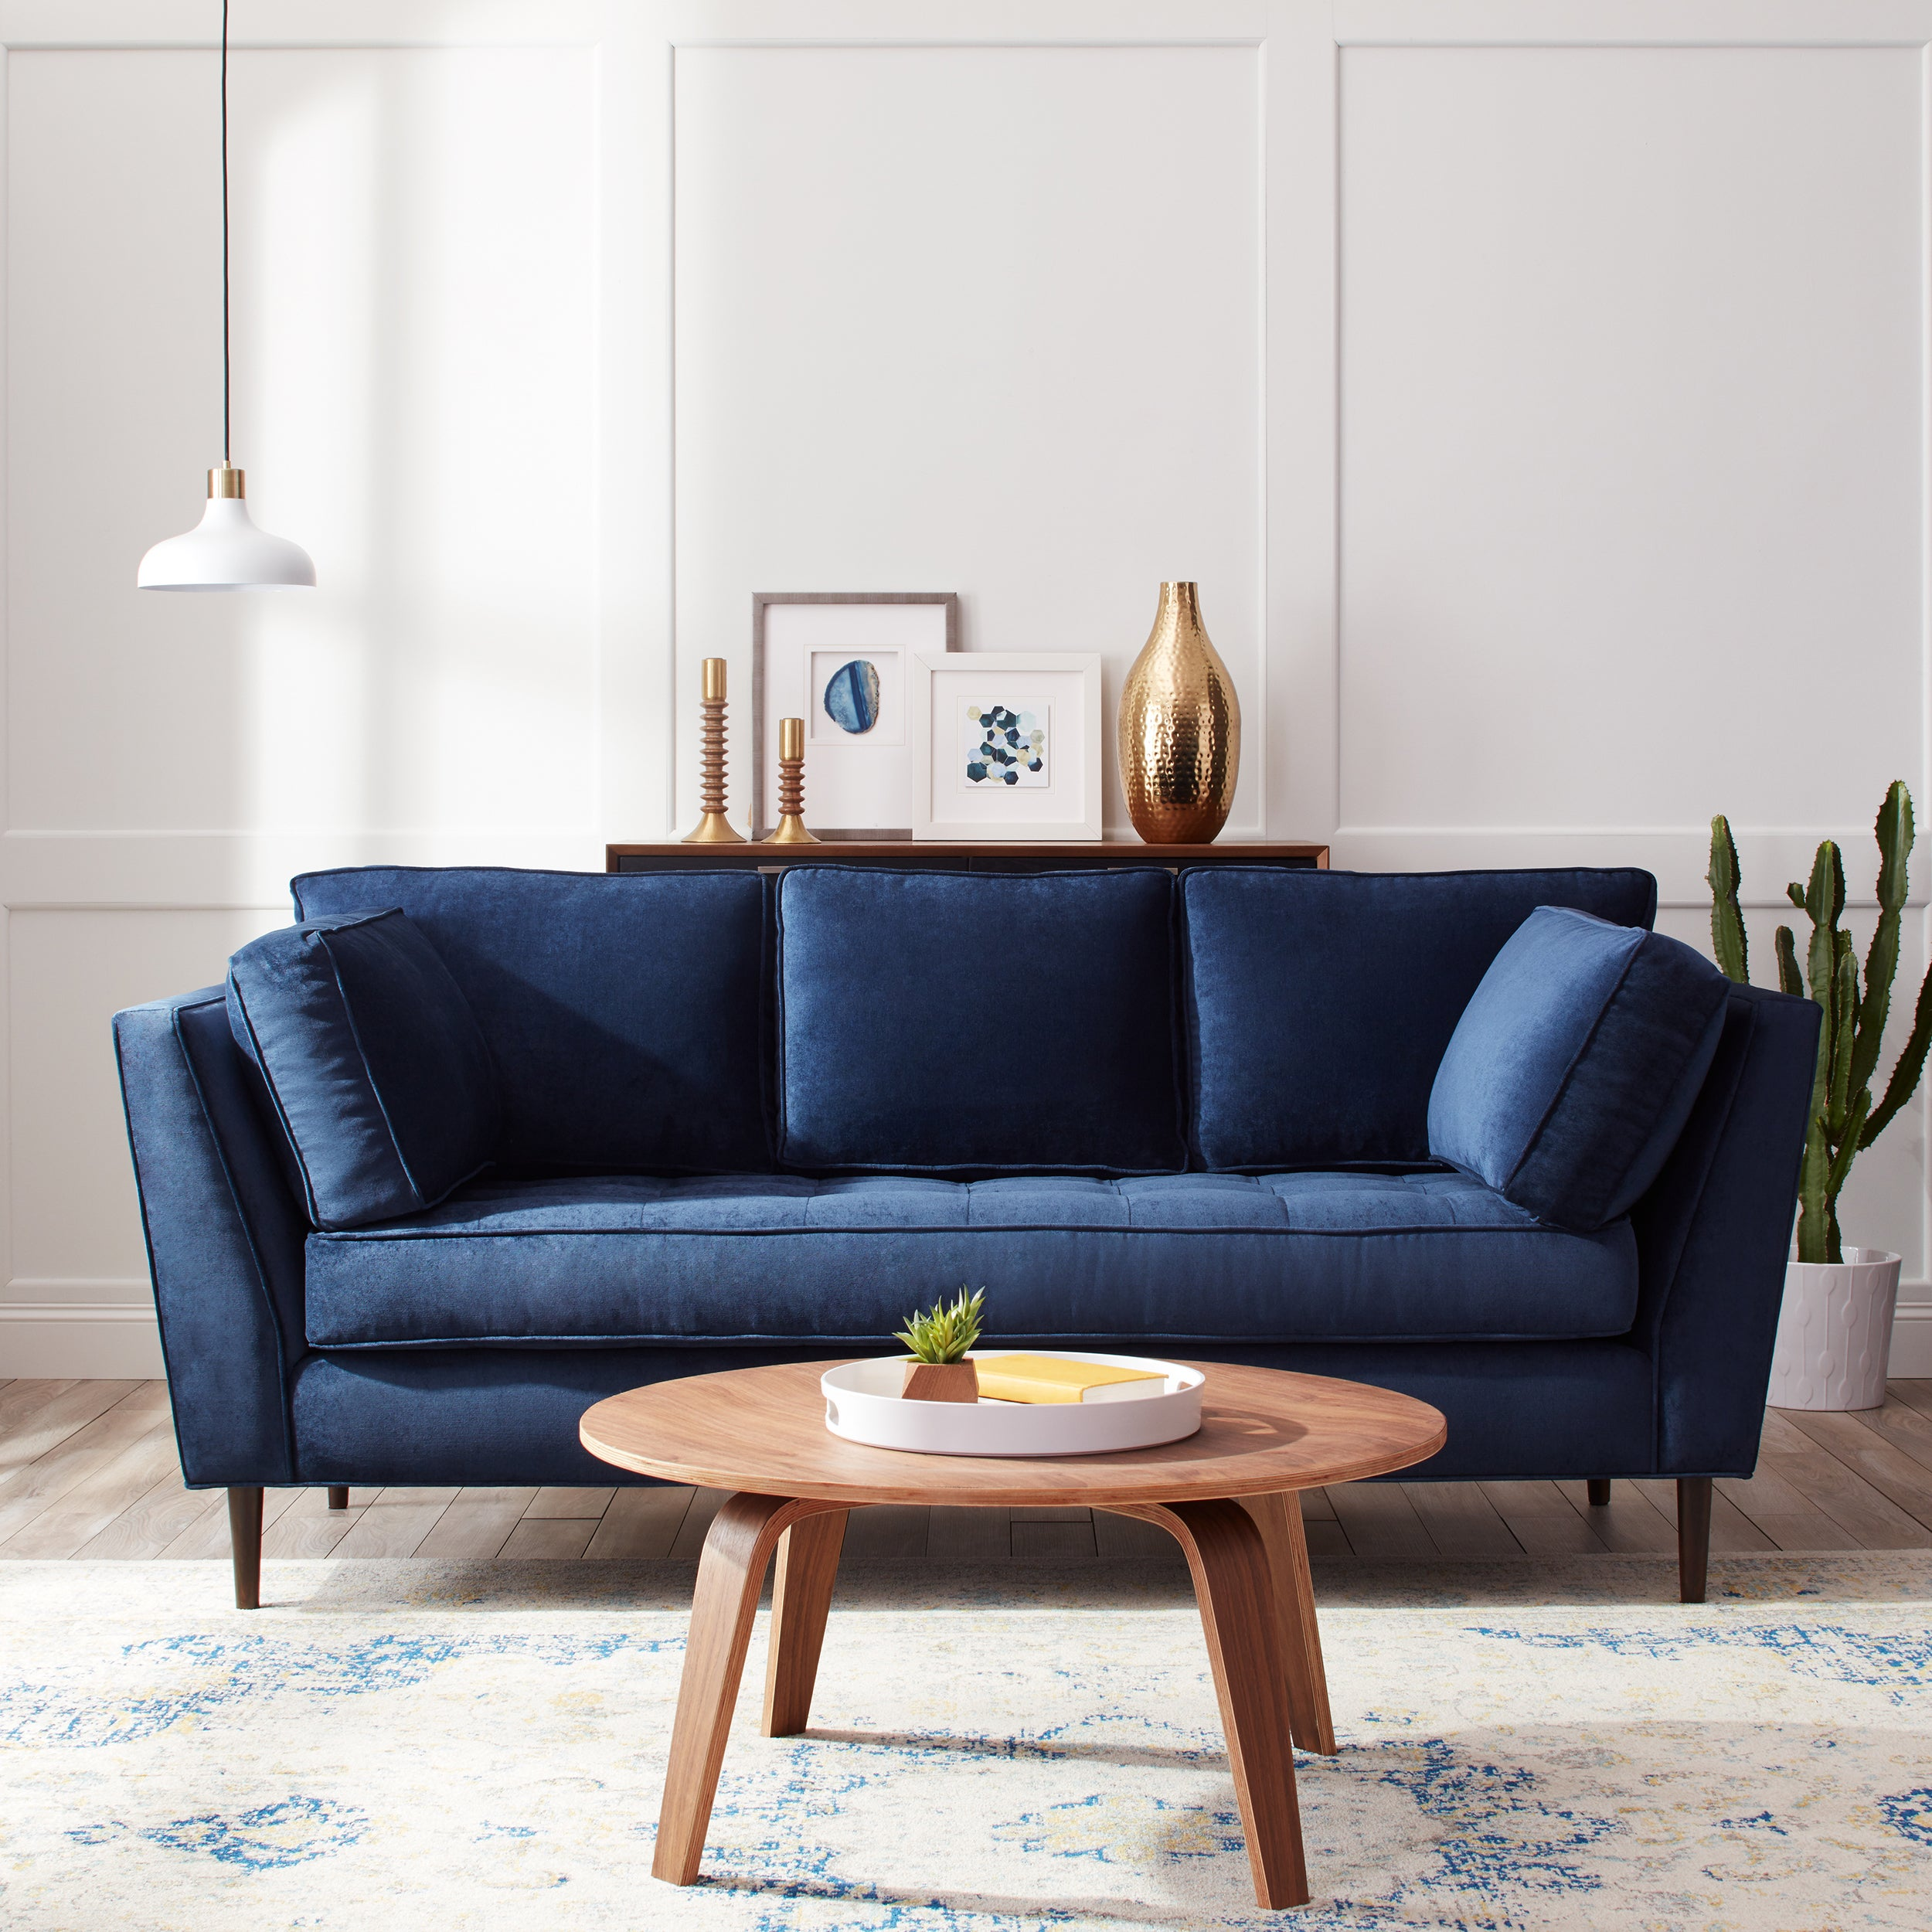 Picture of: James Mid Century Sonoma Navy Blue Sofa Overstock 12024762